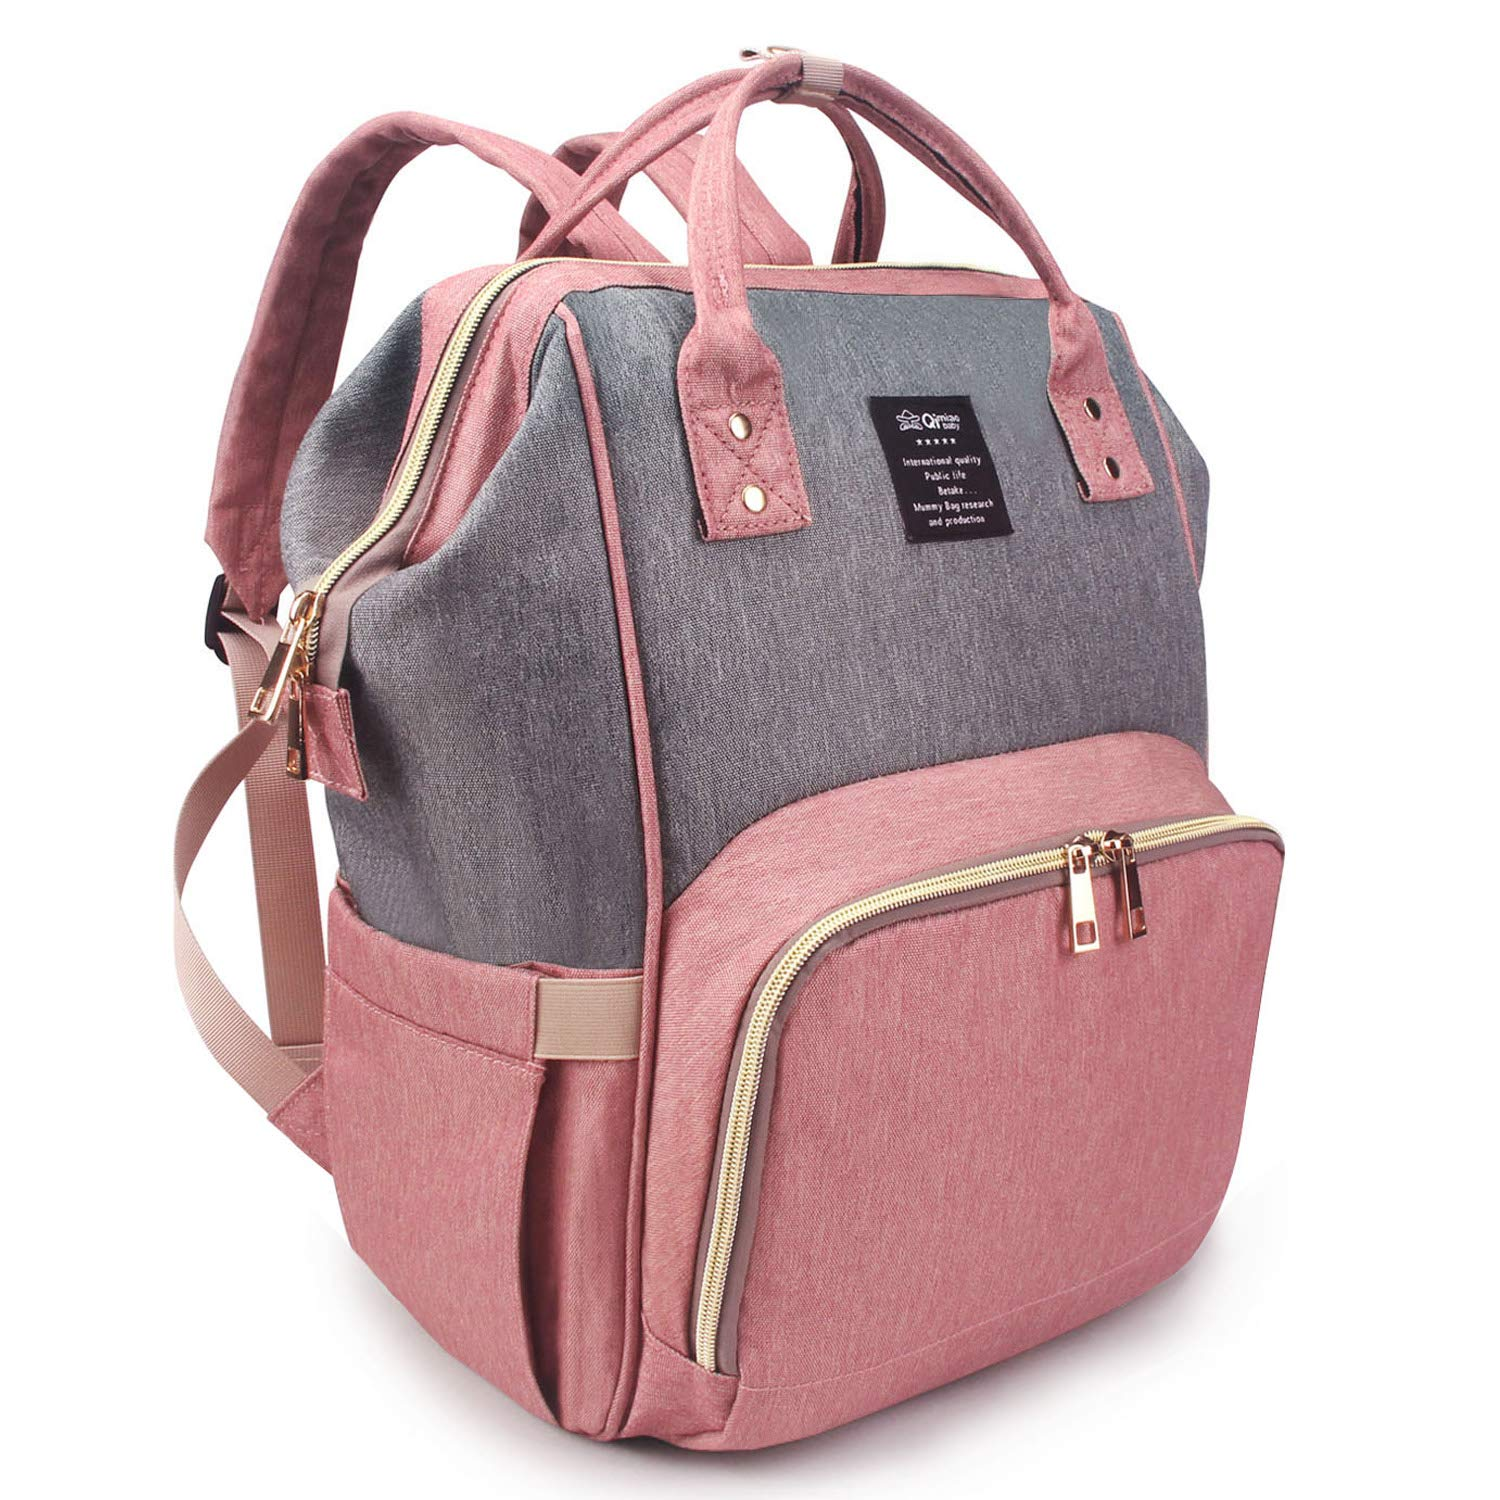 Qimiaobaby Diaper Bag Backpack, baby Nappy storage travel bag (Pink Gray) by QIMIAOBABY